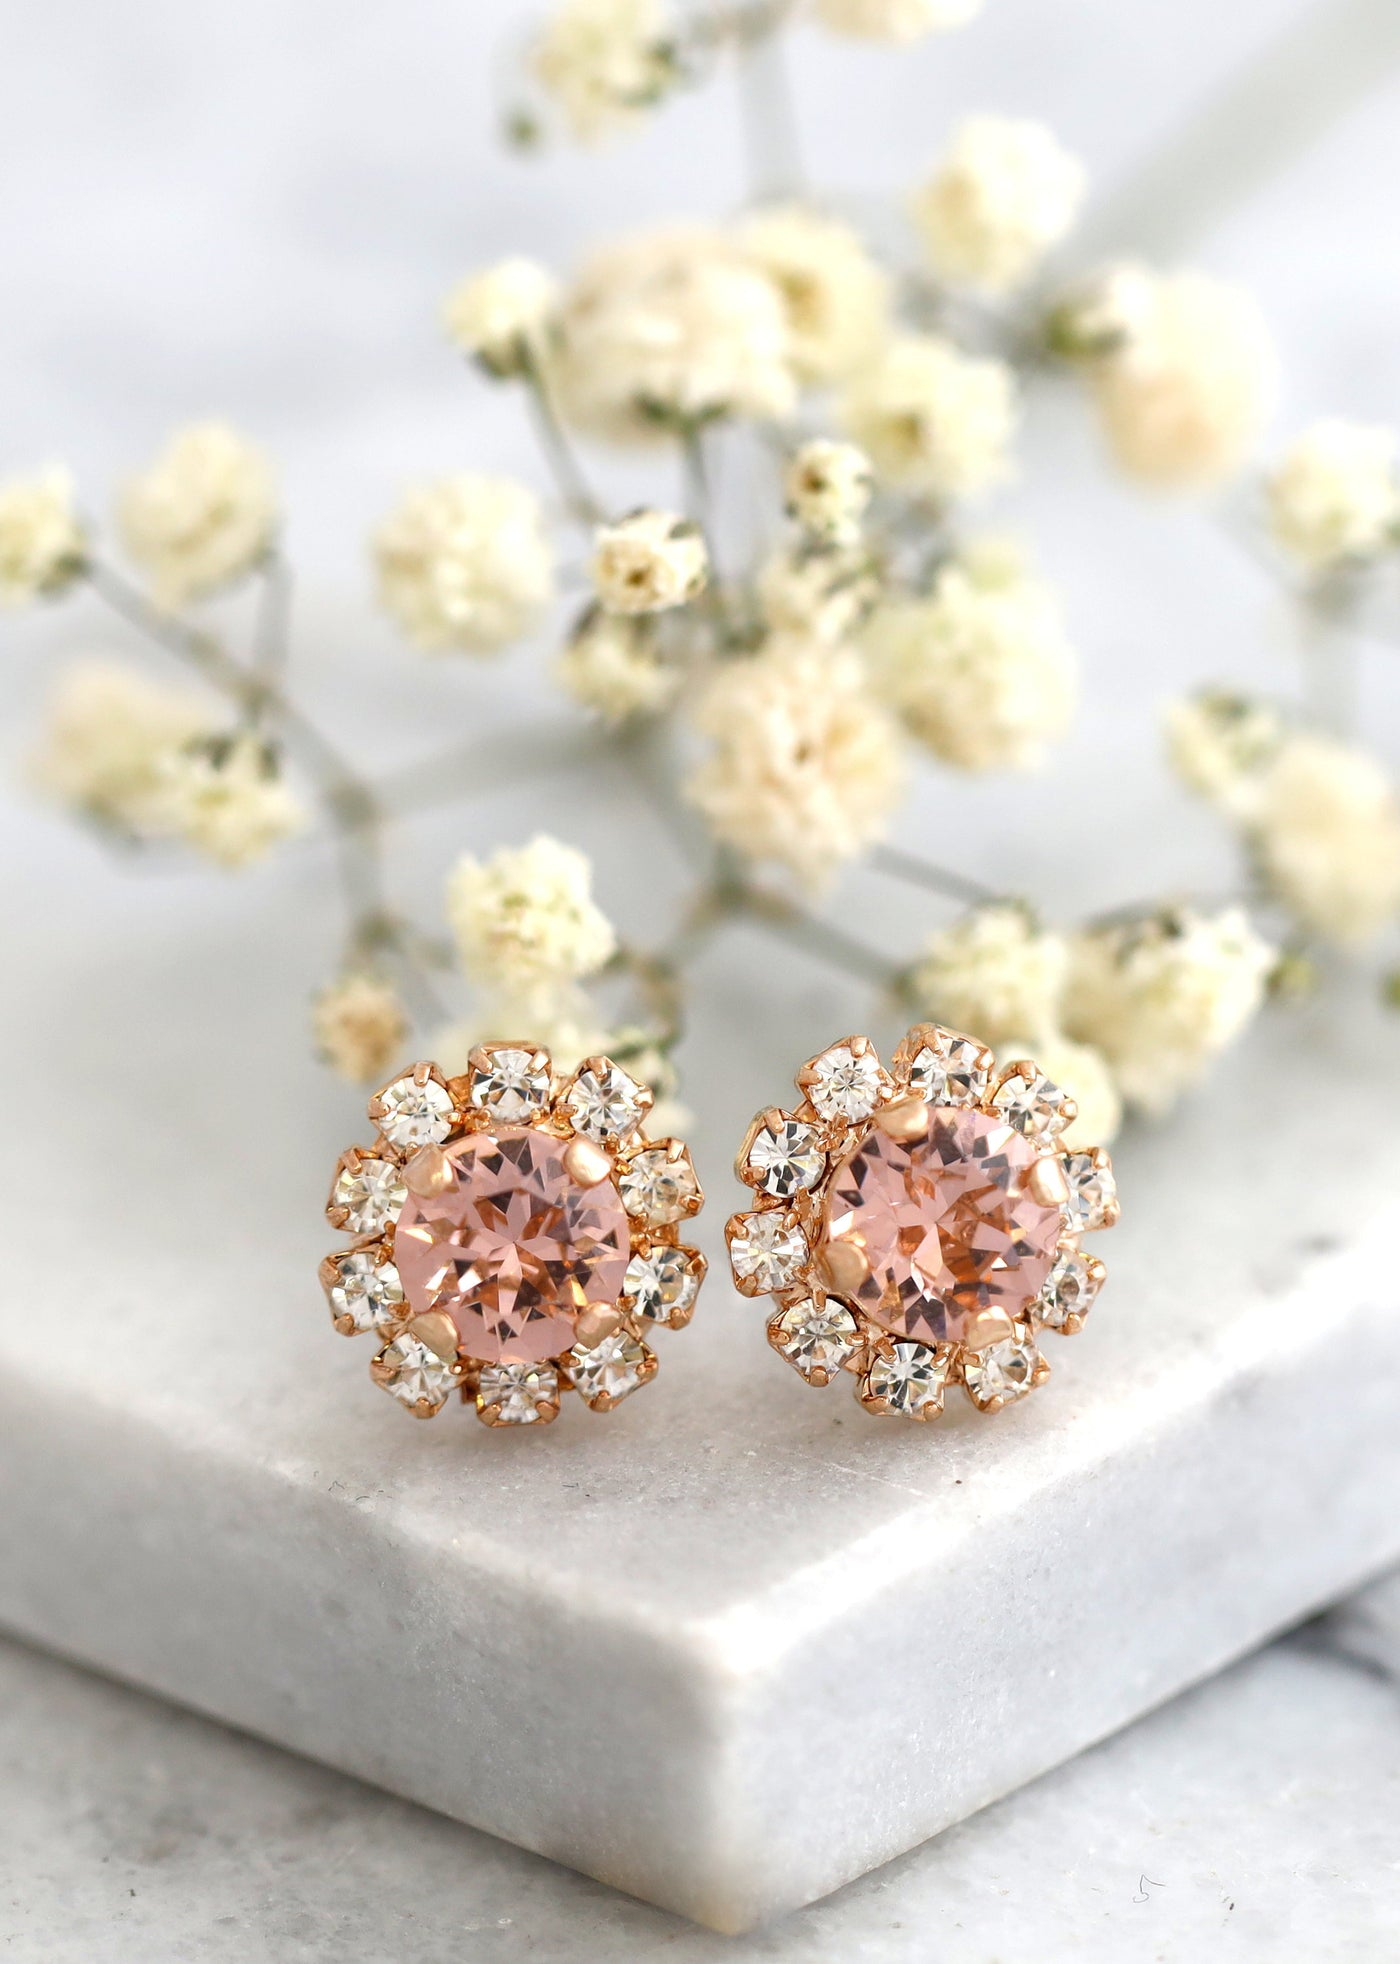 Bridal Blush Crystal Stud Earrings, Blush Stud Earrings, Flower girl Blush Earrings, Flower Girl Crystal Earrings, Bridesmaids Earrings